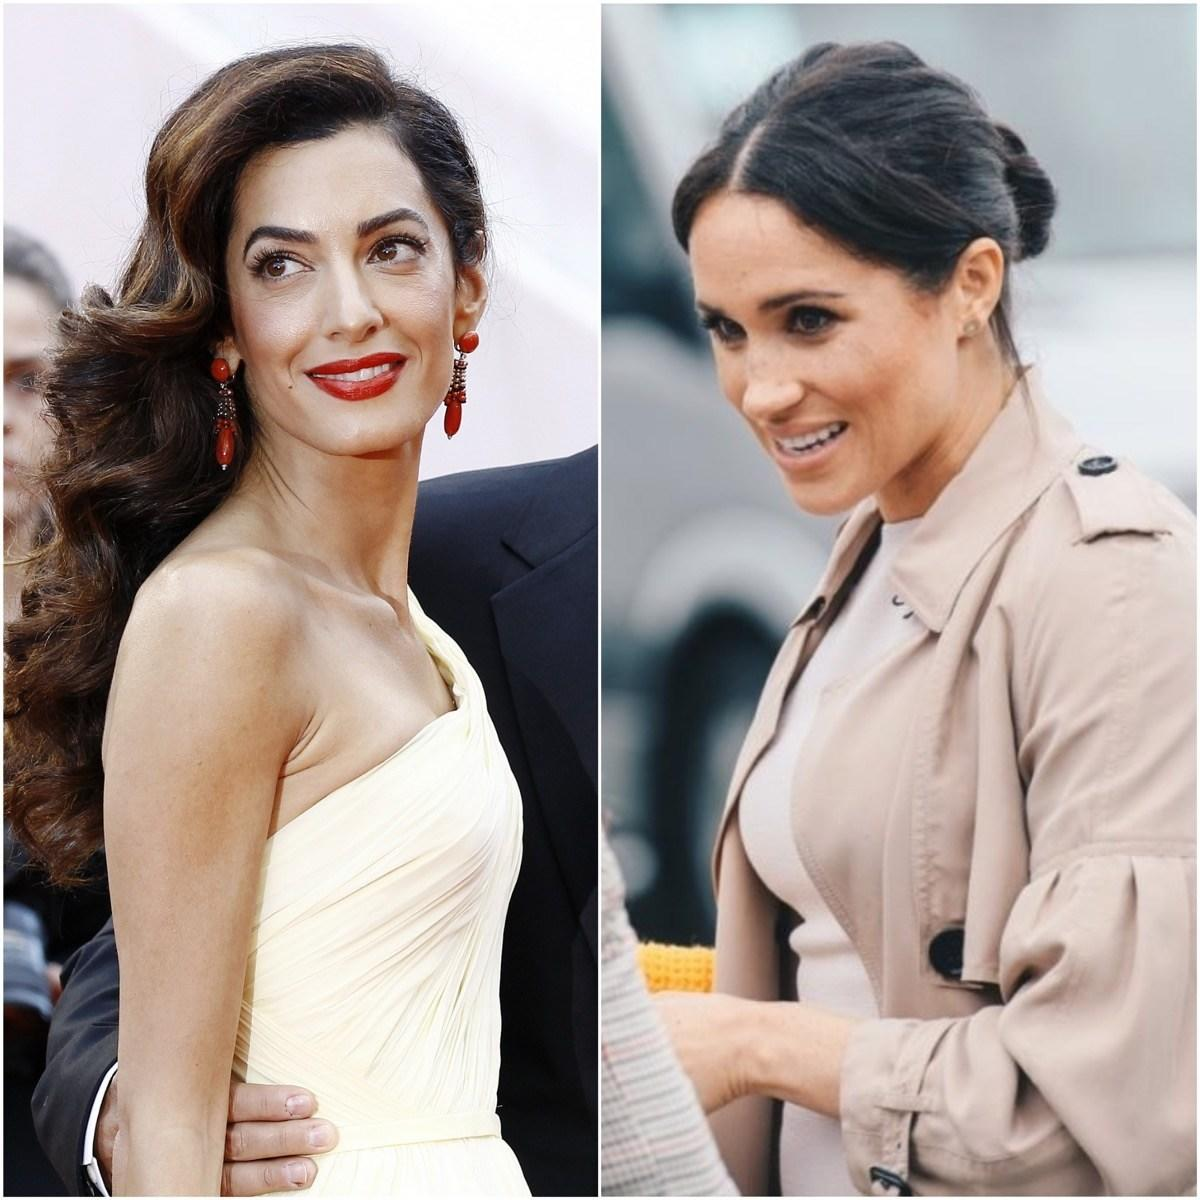 Here's What Meghan Markle and Amal Clooney Secretly Talk About